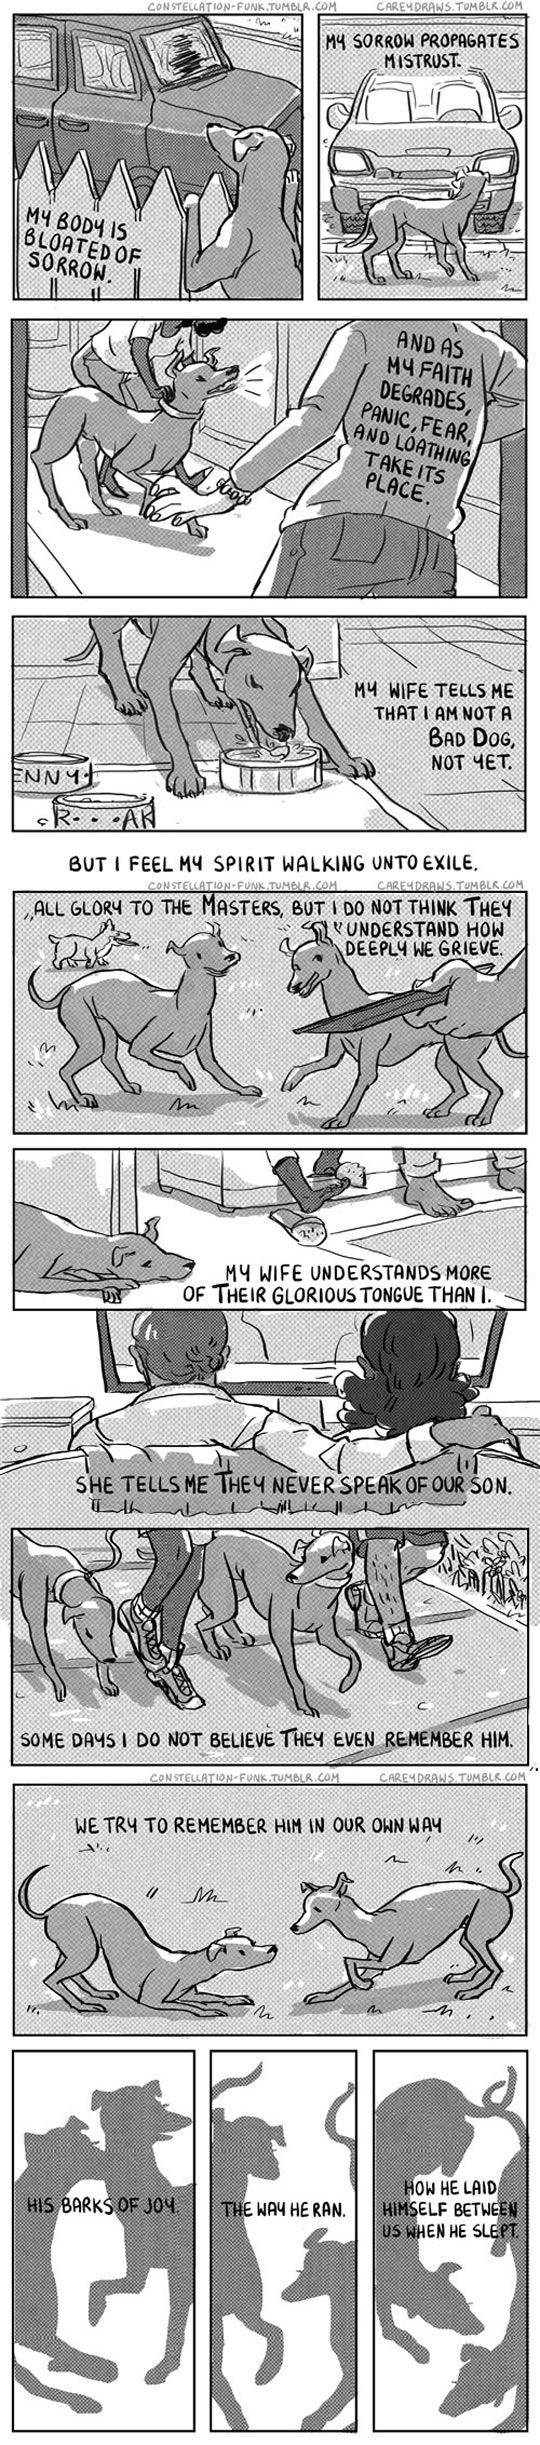 dogs-story-wife-son-buried-back-yard-comic